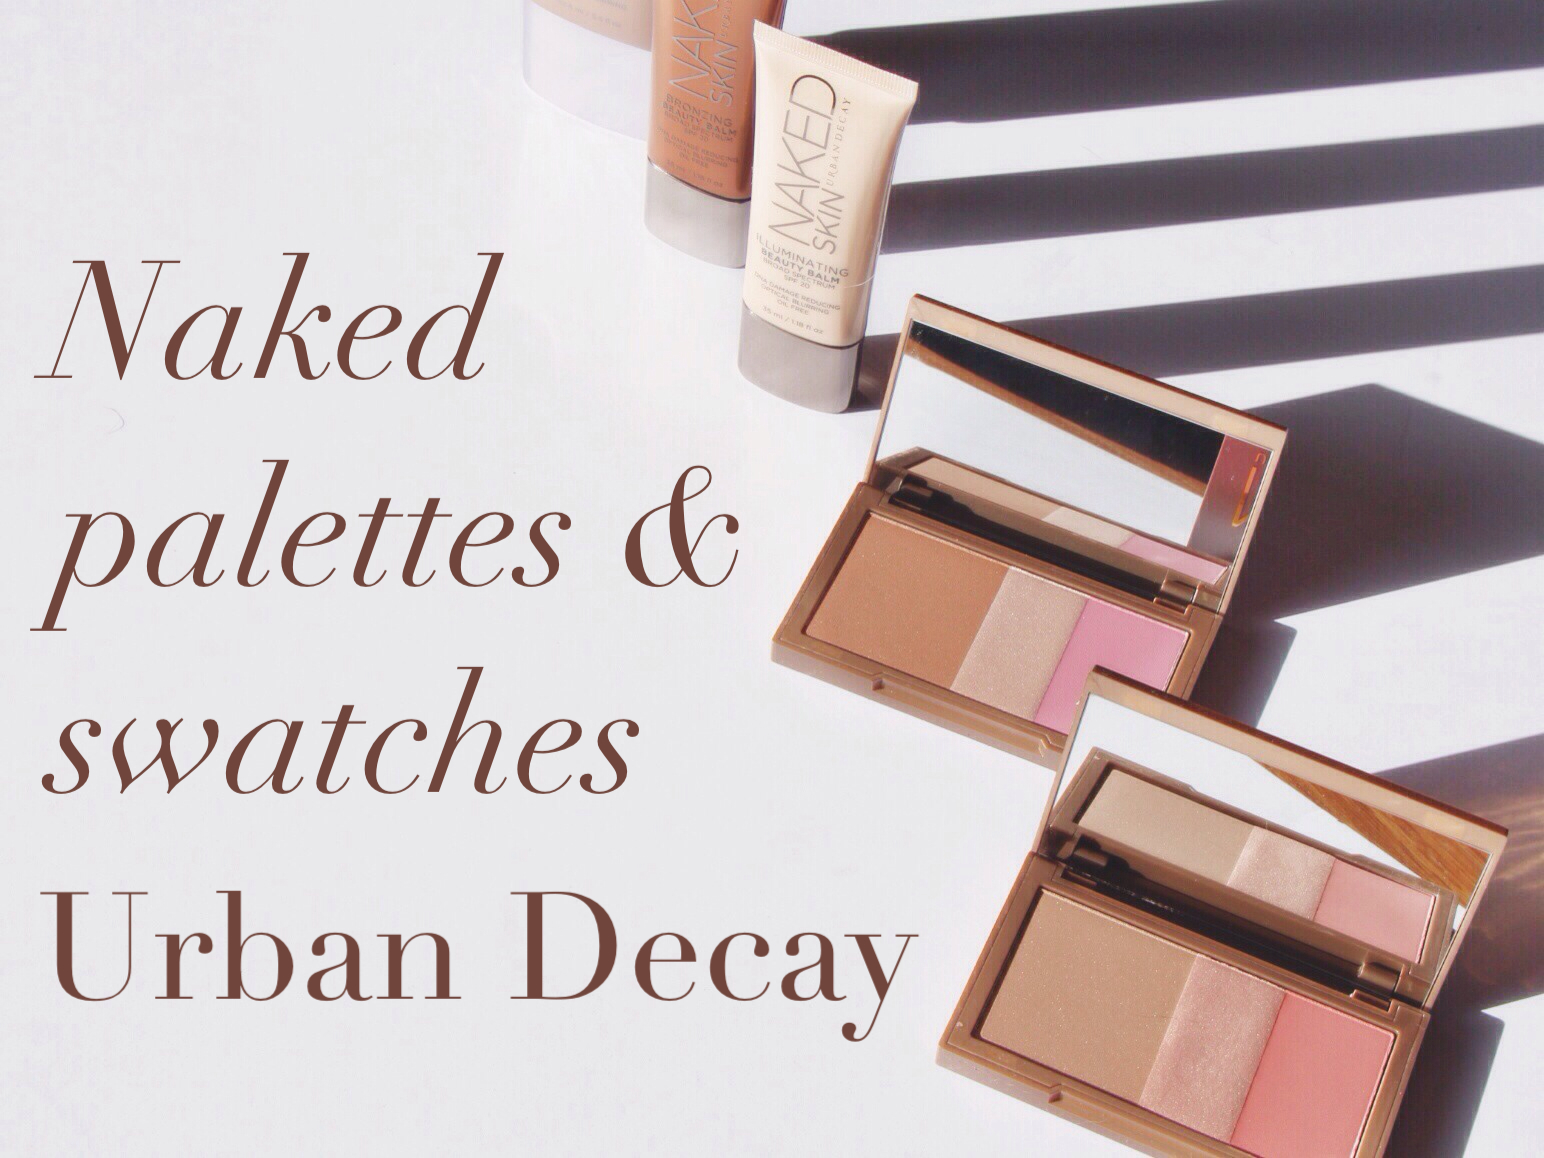 Urban Decay Summer 2 Review and Swatches